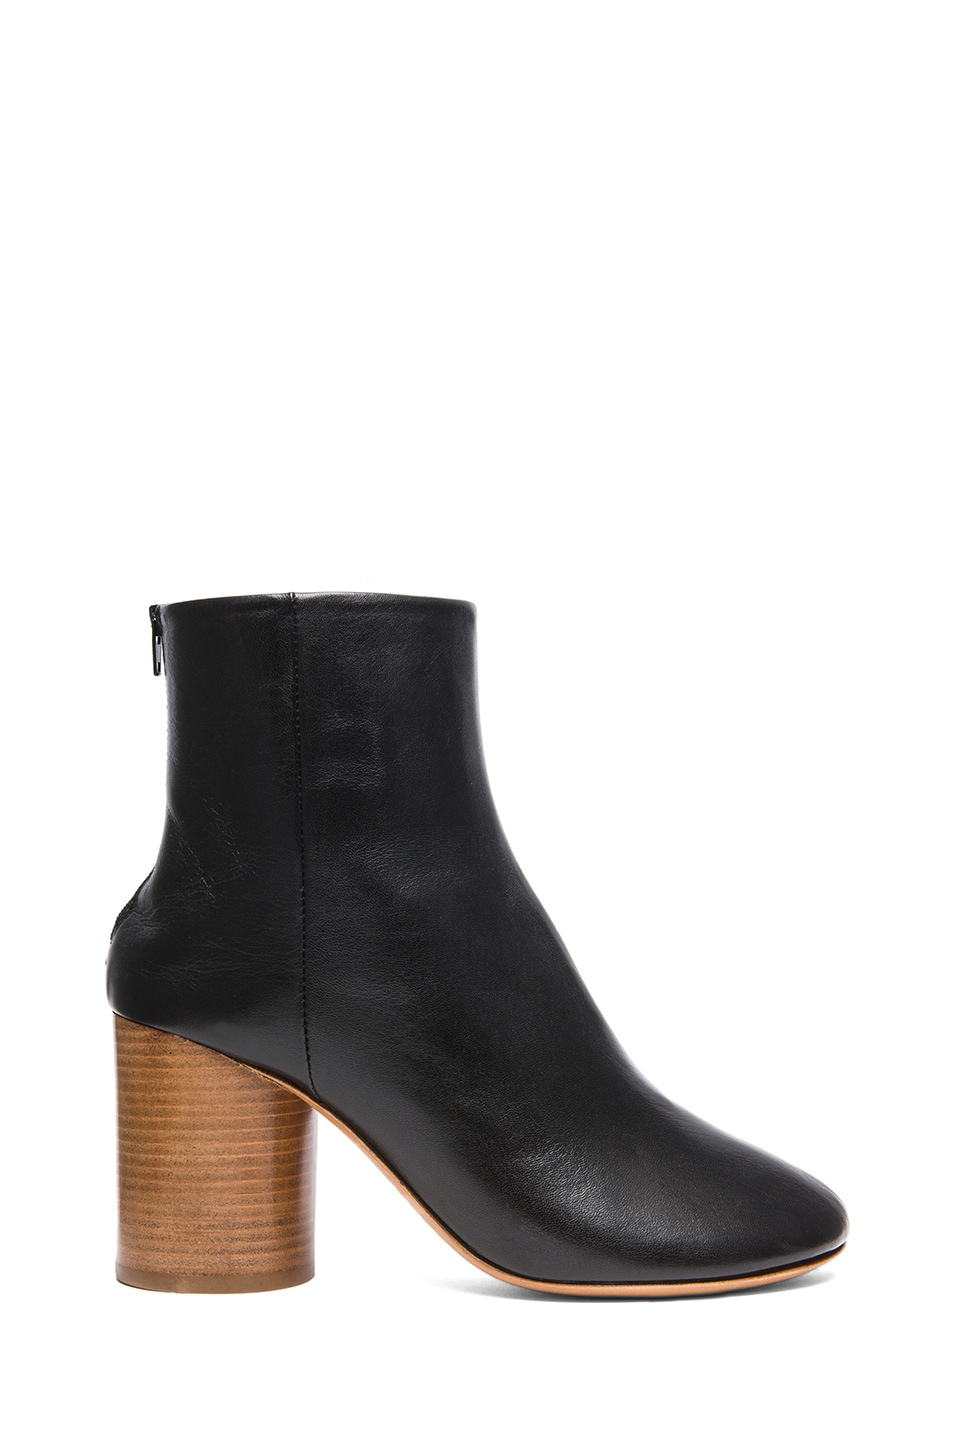 Image 1 of Maison Margiela Kid Leather Booties in Black